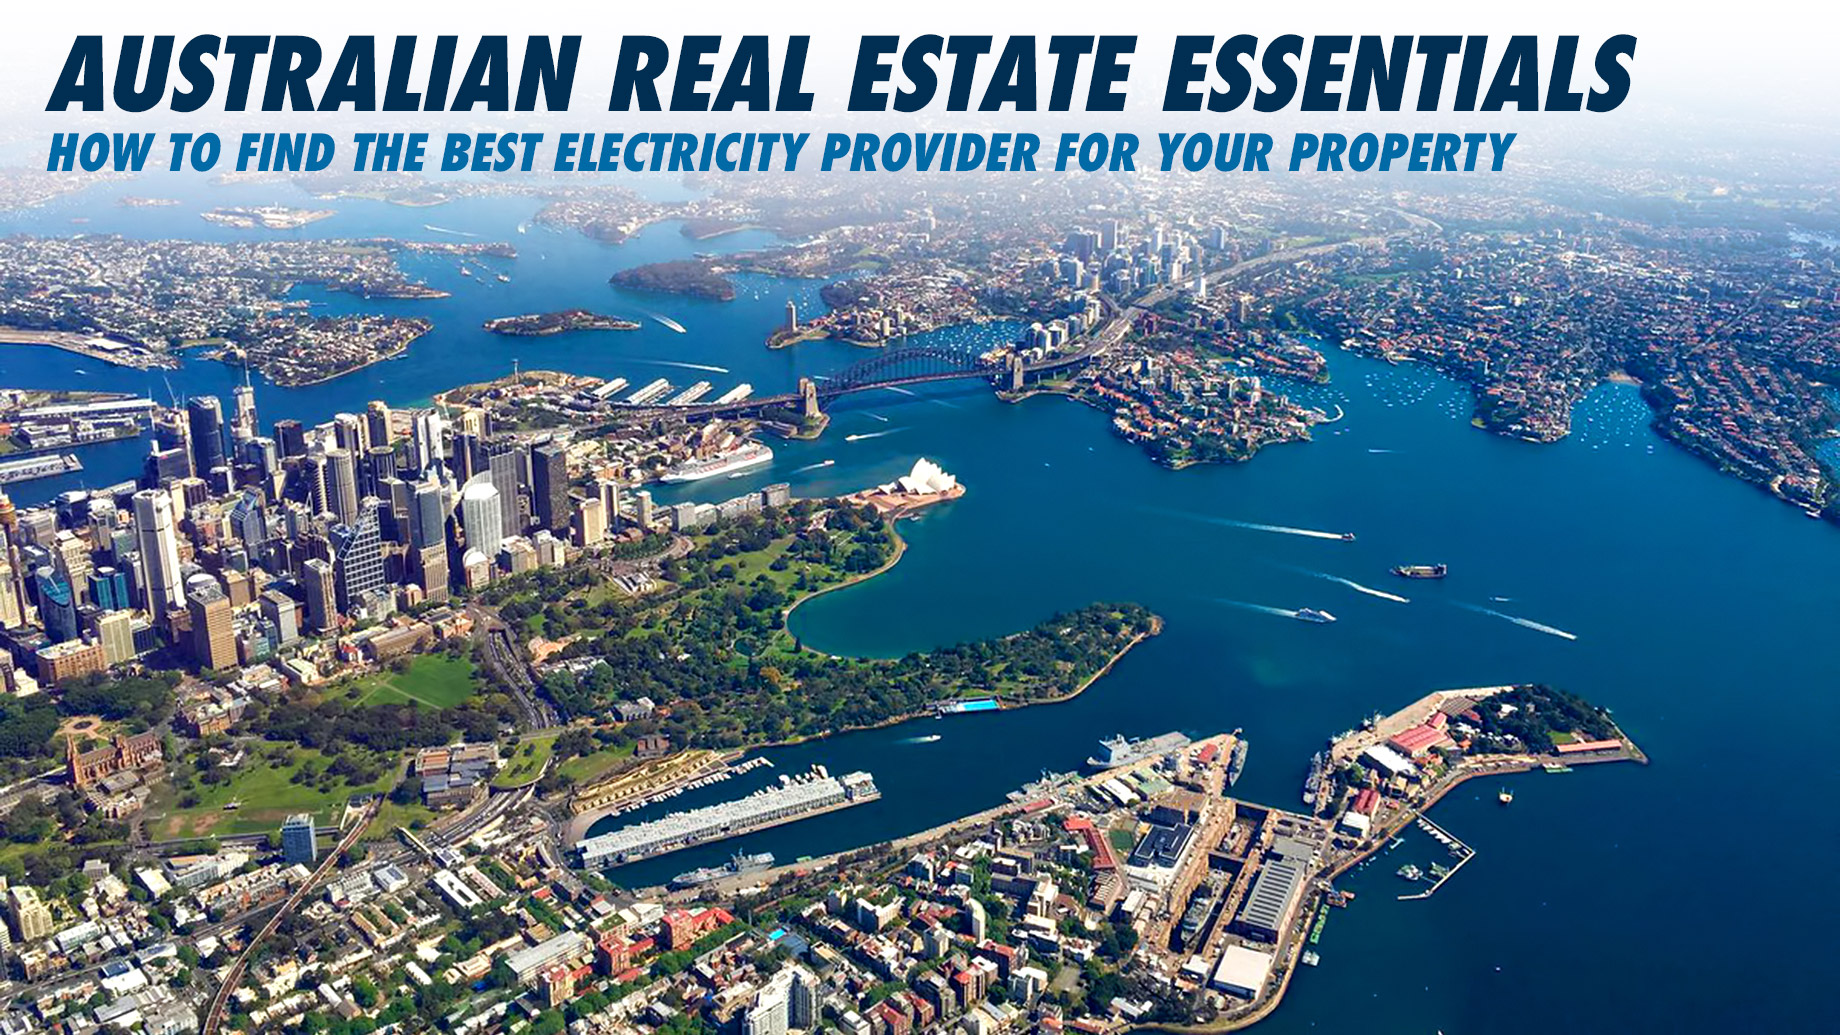 Australian Real Estate Essentials - How to Find the Best Electricity Provider for Your Property